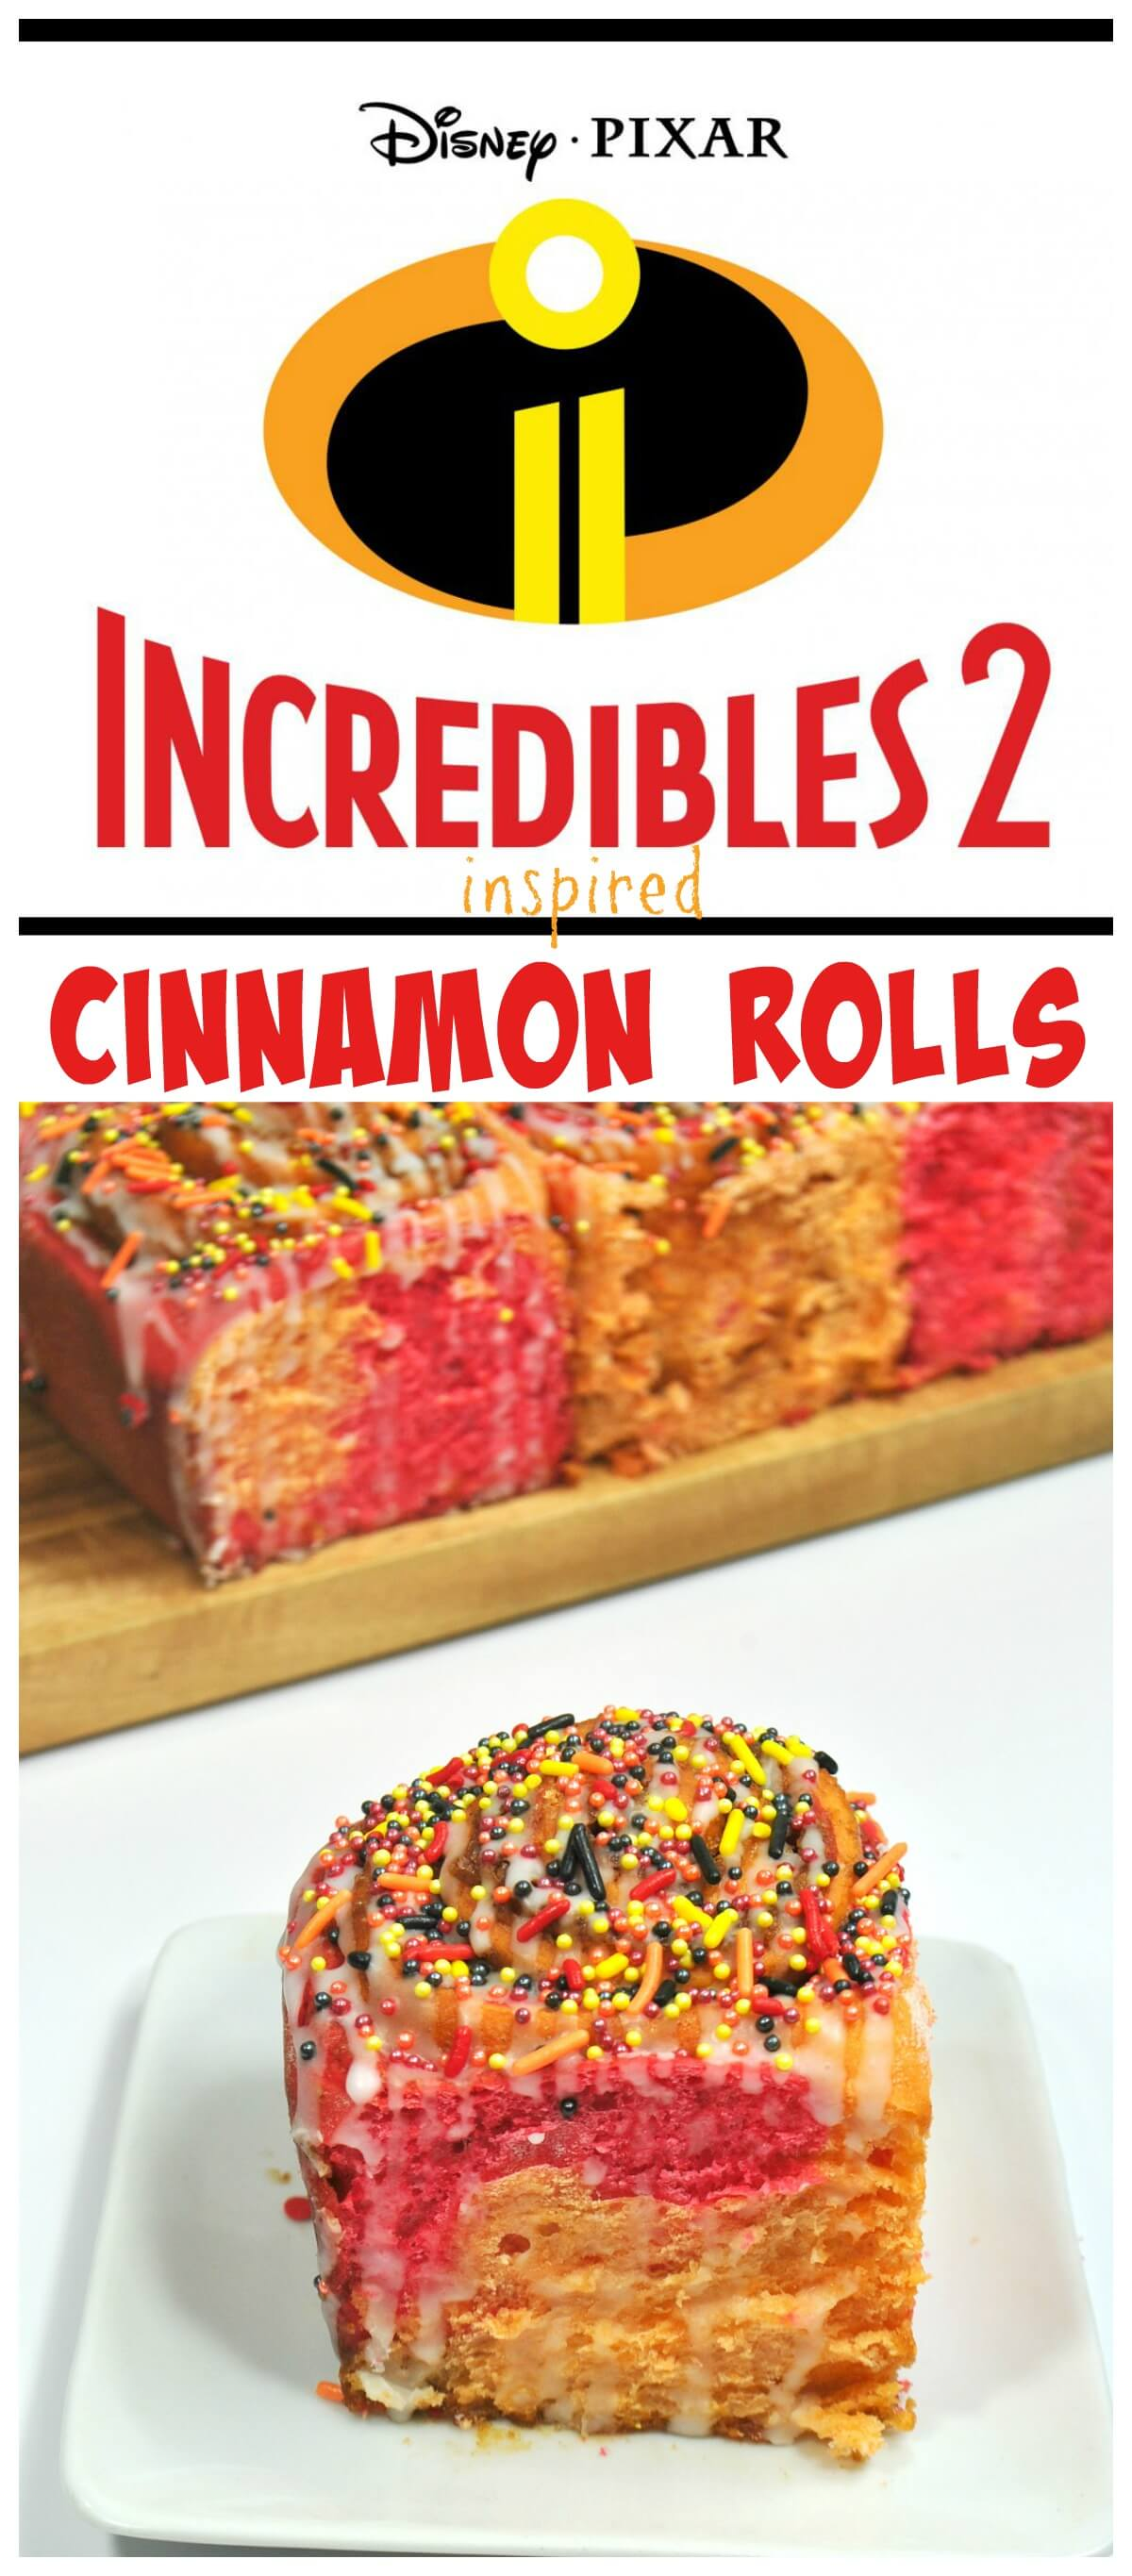 The Incredibles 2 movie review & Cinnamon Rolls!